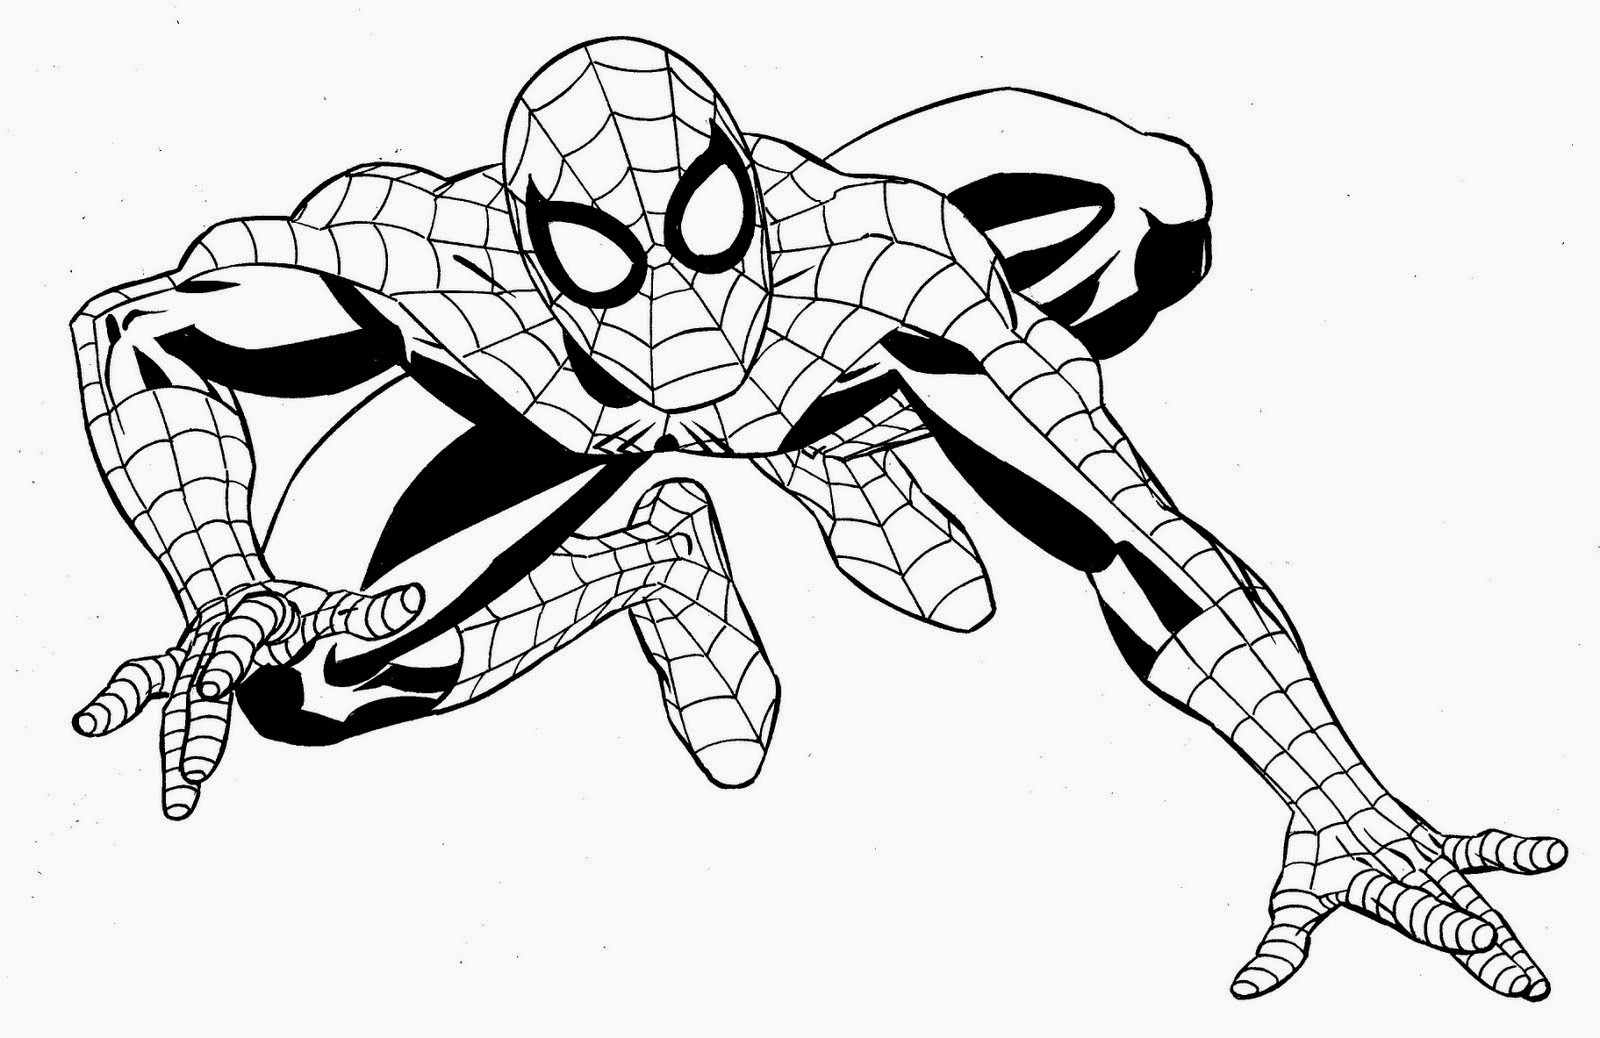 Super Hero Coloring Pages For Kids  Coloring Pages Superhero Coloring Pages Free and Printable